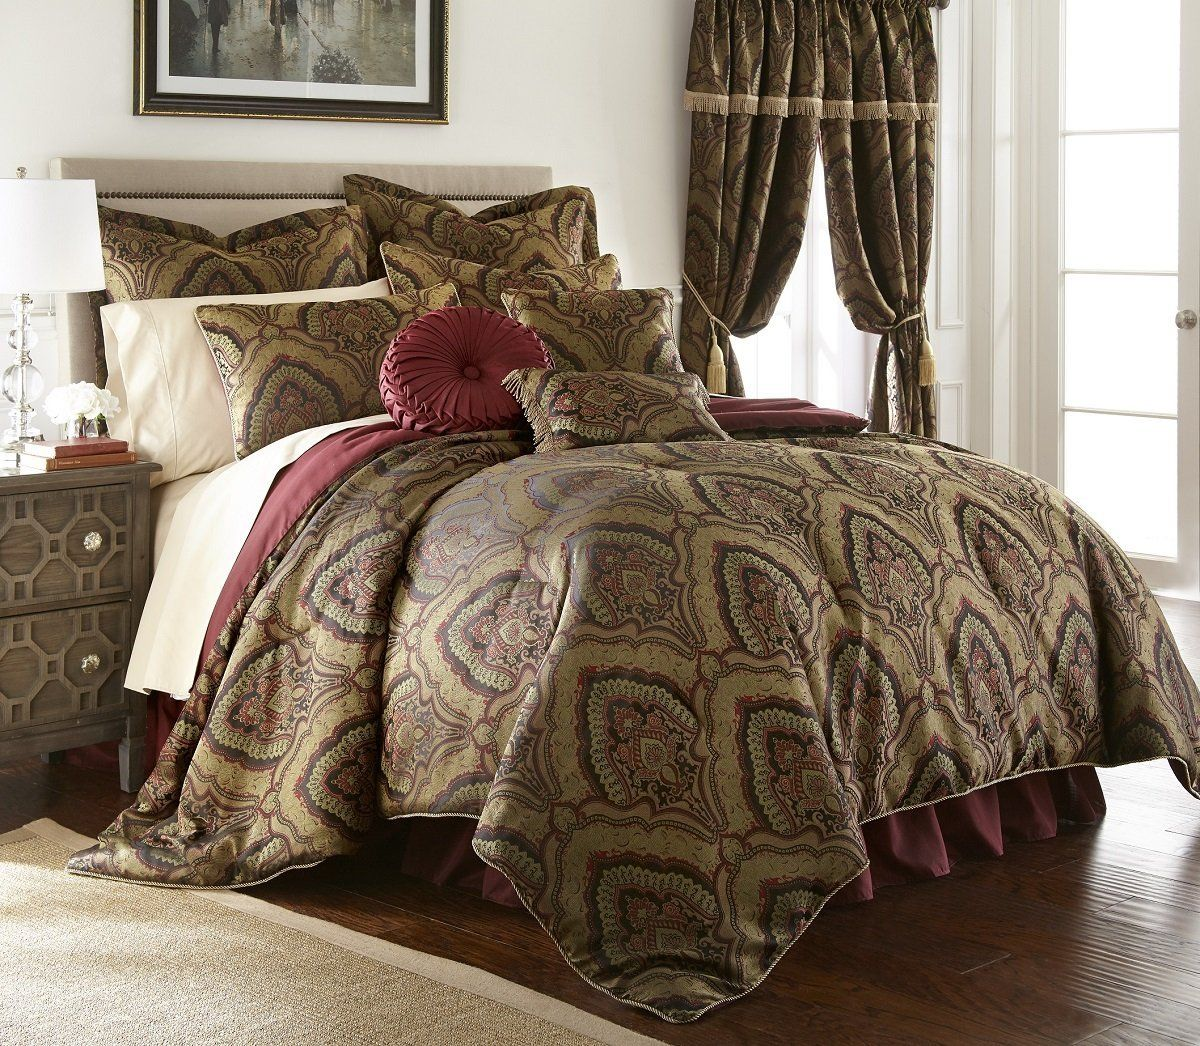 canada king home comforter queen oversized sets design ideas